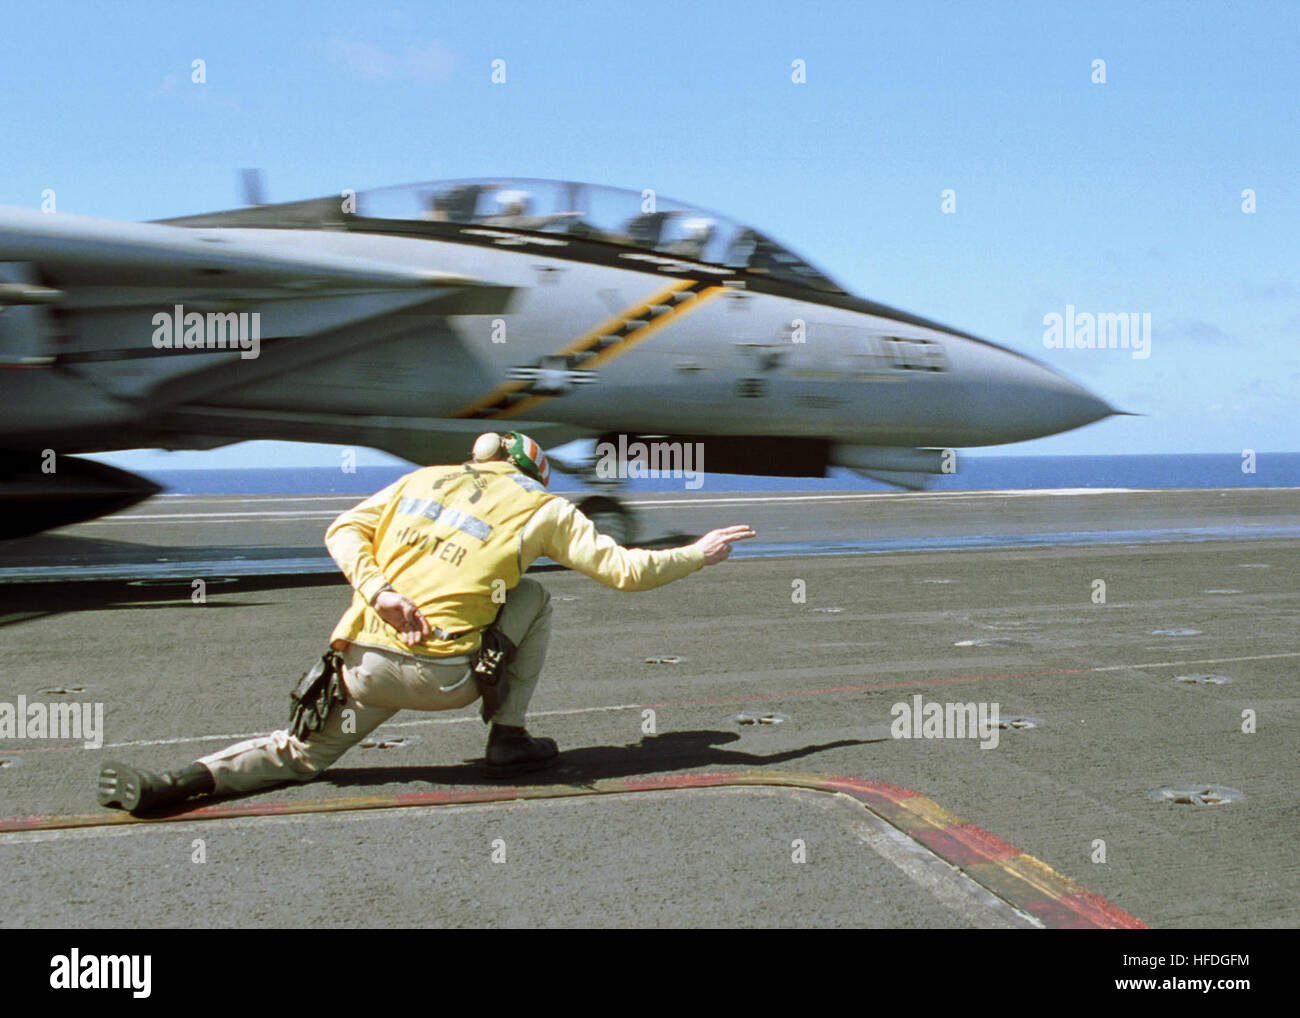 Vf 103 Stock Photos & Vf 103 Stock Images - Alamy